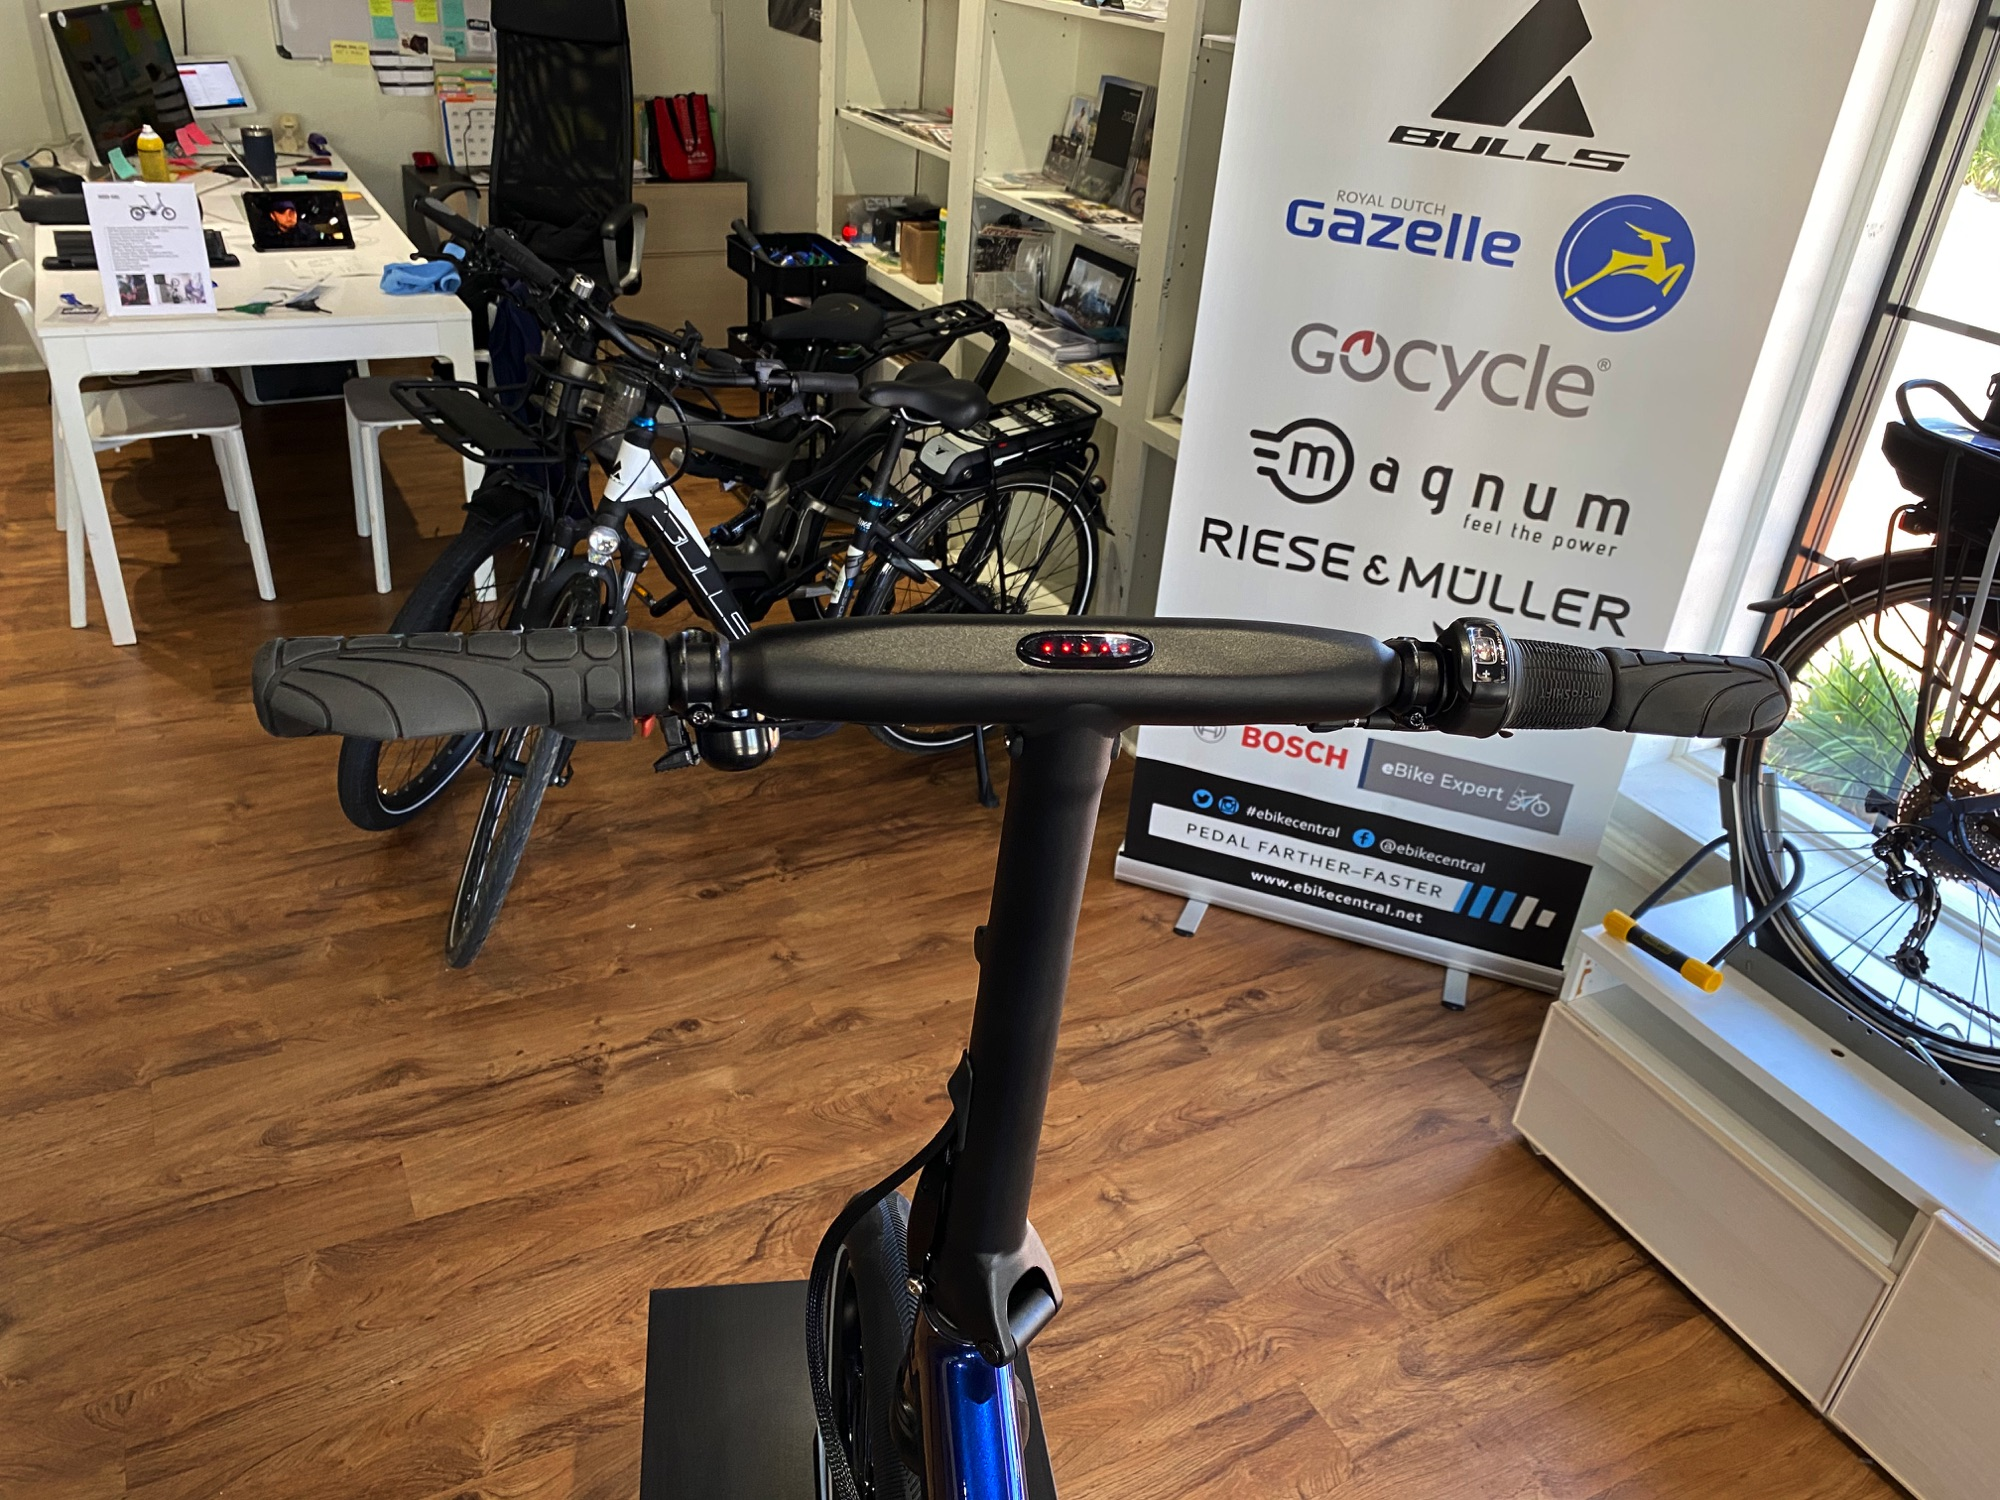 Gocycle GX electric bicycle, eBike Central, Greensboro and Charlotte NC